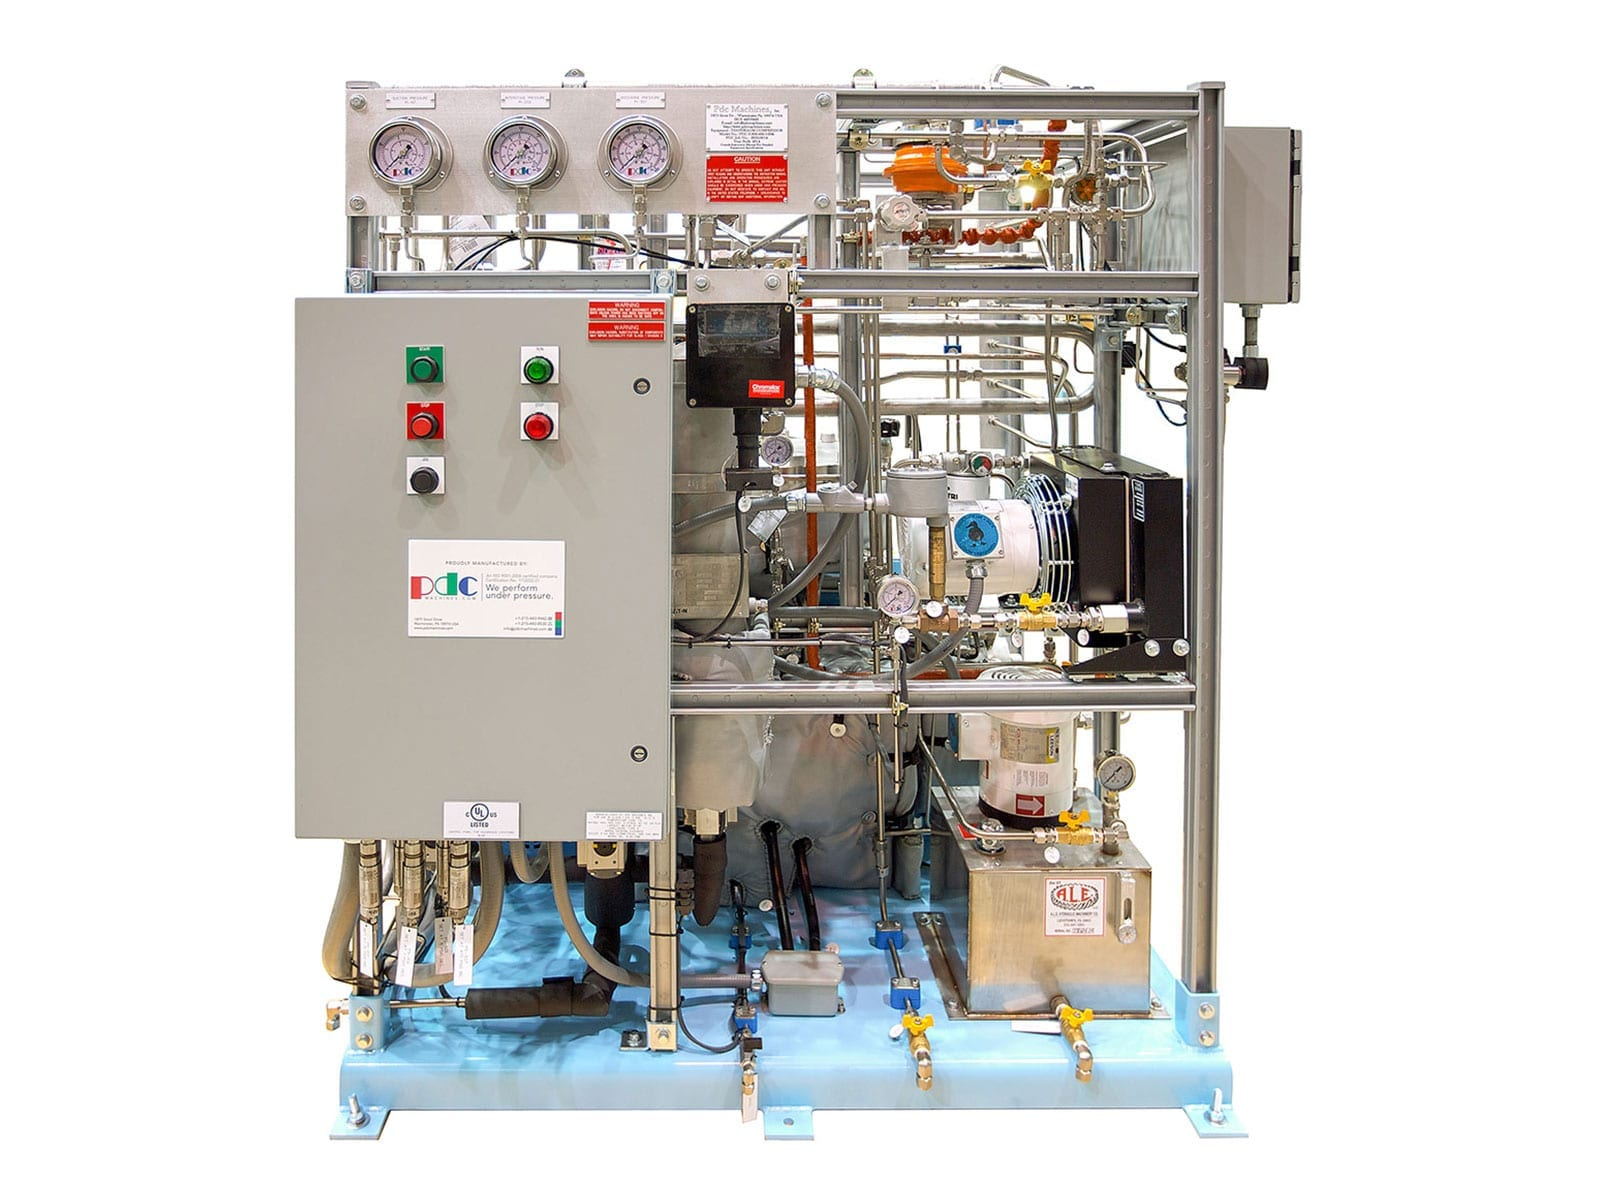 Diaphragm Compressors Membrane Process Gas Pdc Machines Natural Compressor Wiring Diagram Two Stage 10 Hp 7 Kw Motor For Pumping Deuterium This Boosts Pressures From 5 Psig 03 Barg To 600 41